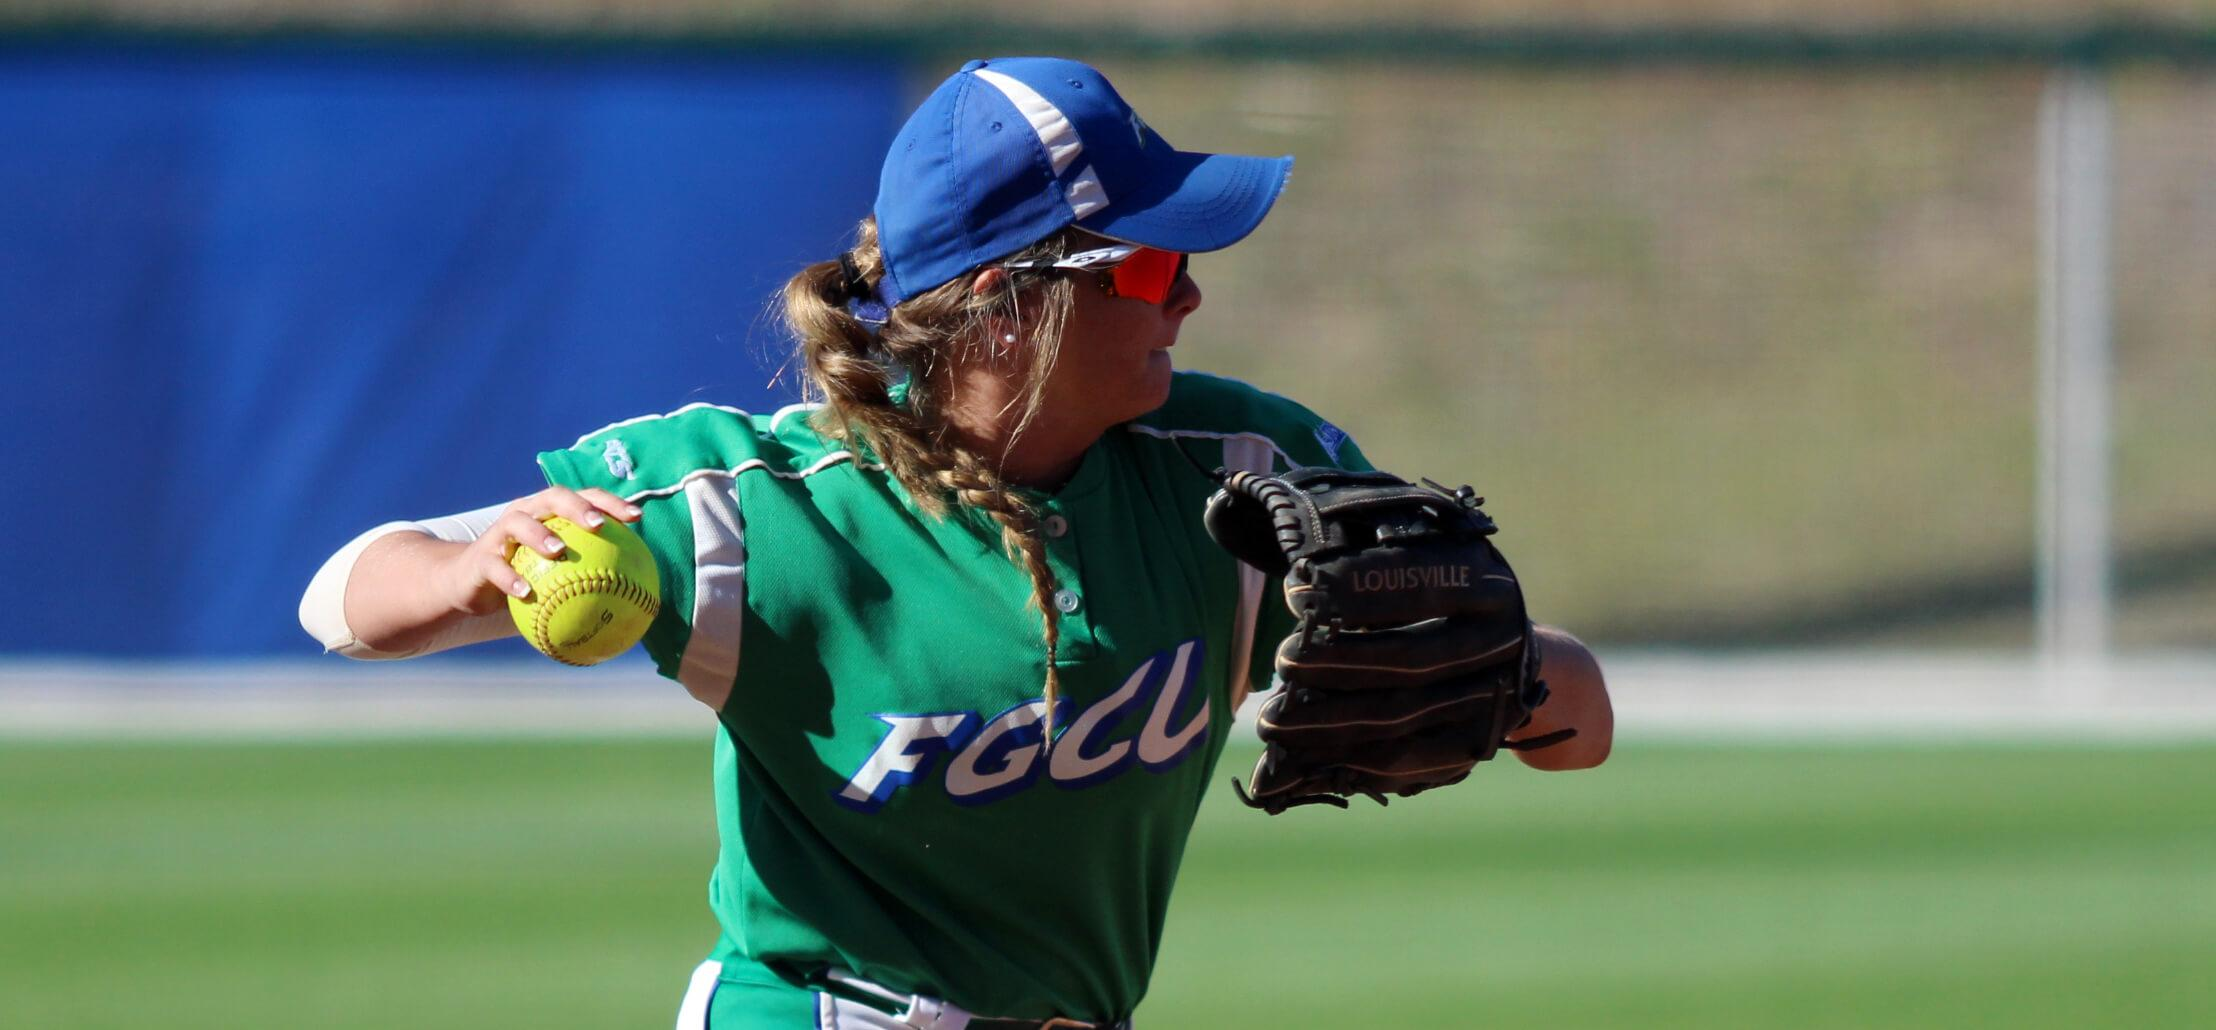 FGCU welcomes Purdue for home opener